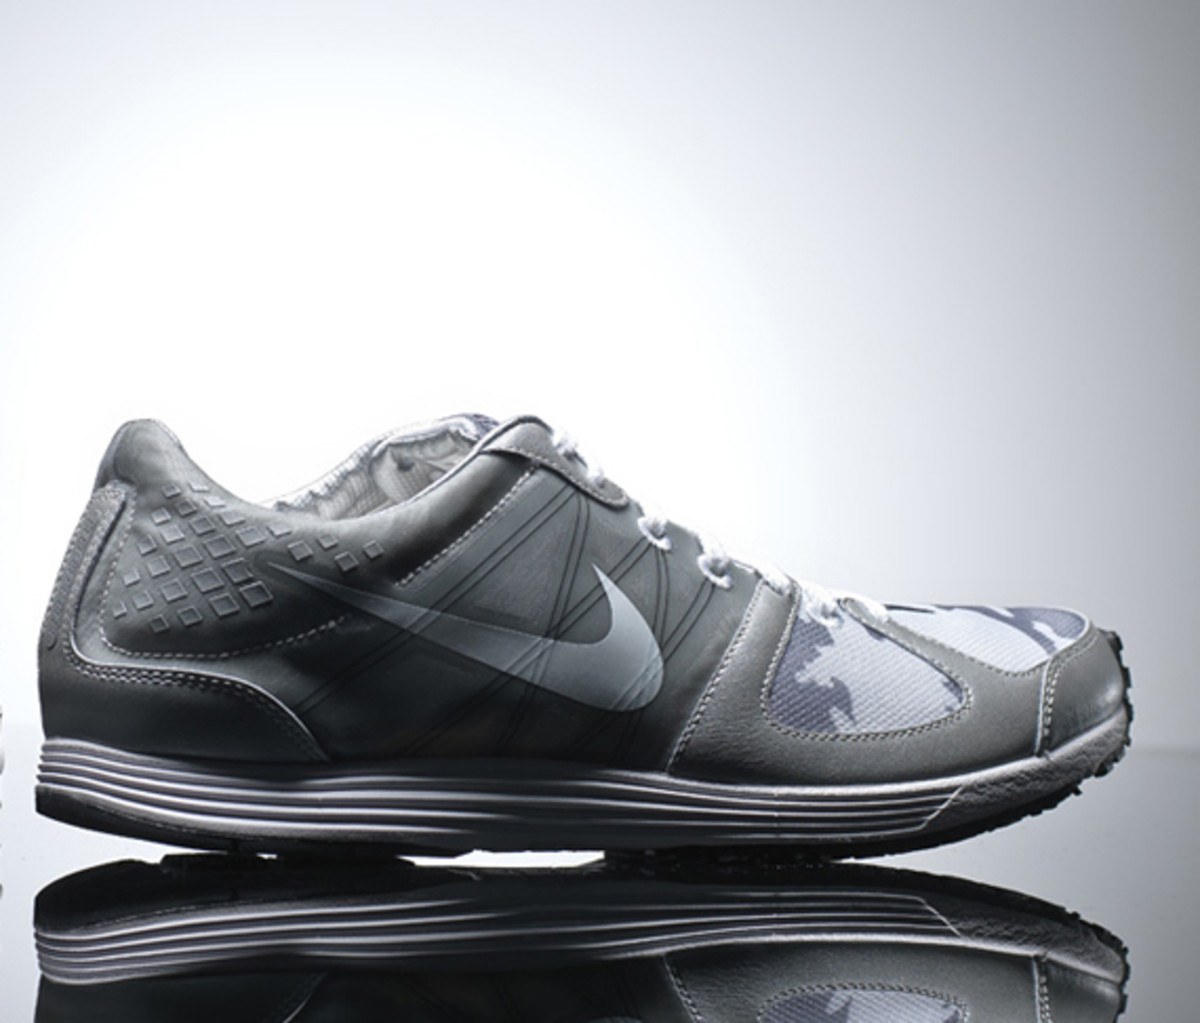 Nike Sportswear - Lunar SpiderRacer Early Camo Execution